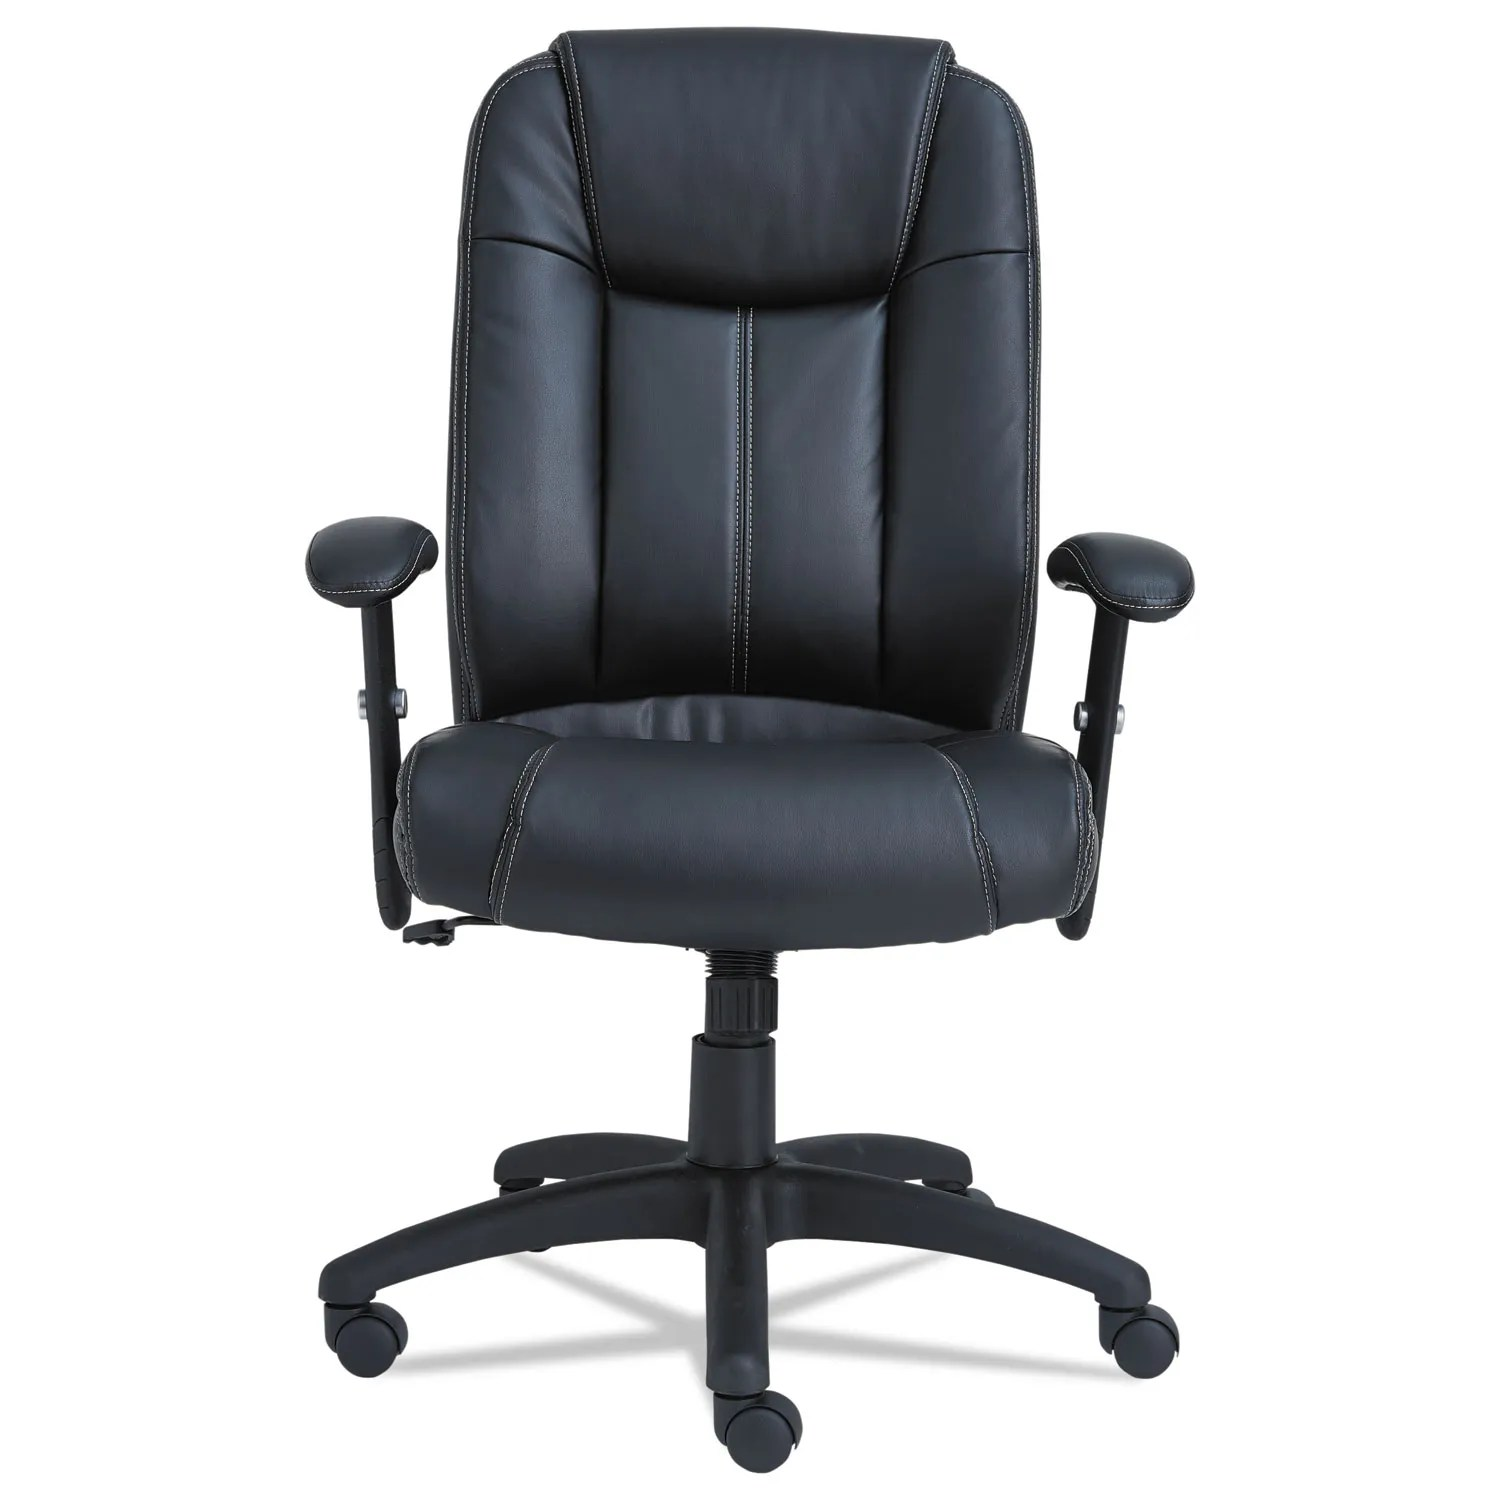 Executive Leather Chair Alera Cc Series Executive High Back Swivel Tilt Leather Chair Black